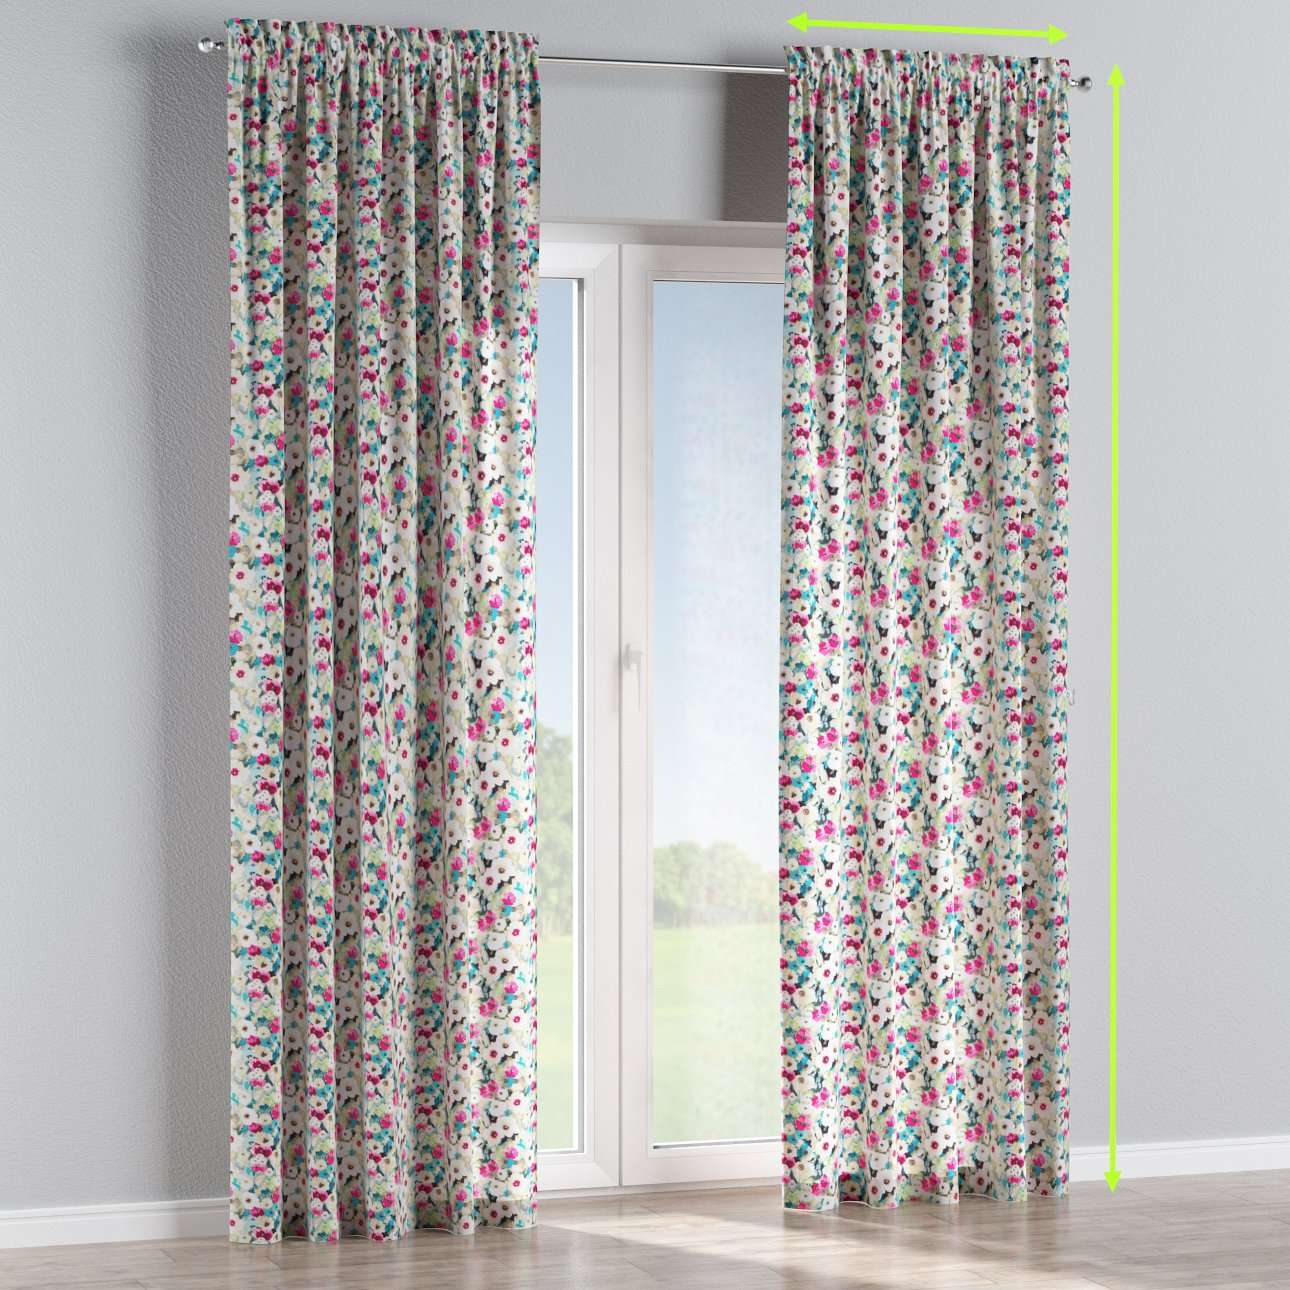 Slot and frill lined curtains in collection Monet, fabric: 140-10